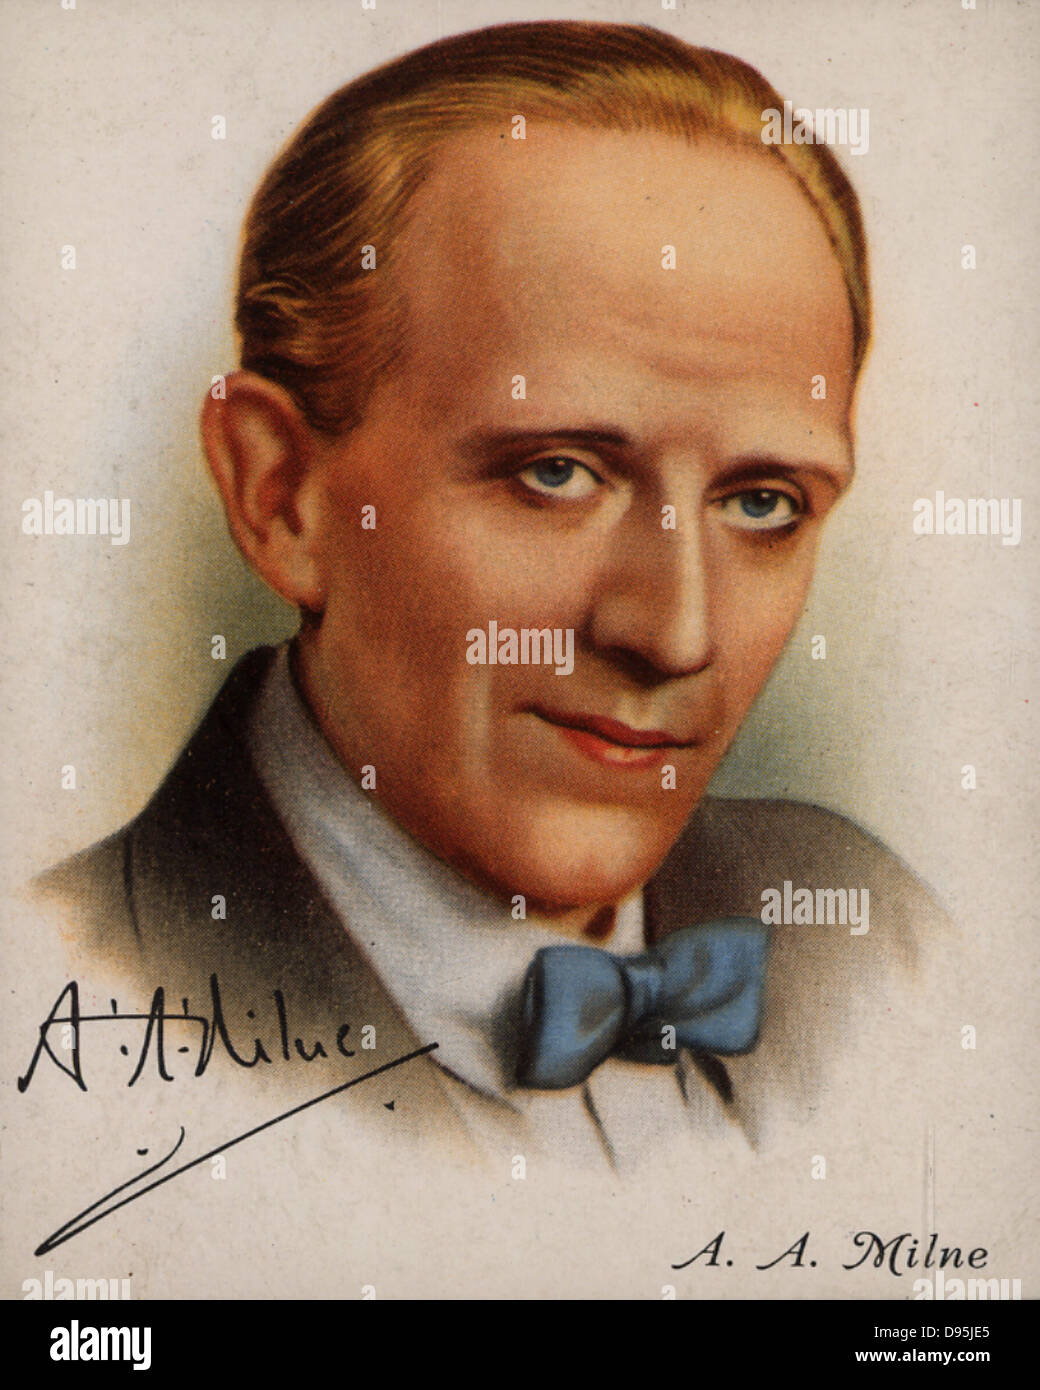 Alan Alexander (AA) Milne (1882-1956), English author best known for his creation of 'Winnie-the-Pooh' (1926). - Stock Image